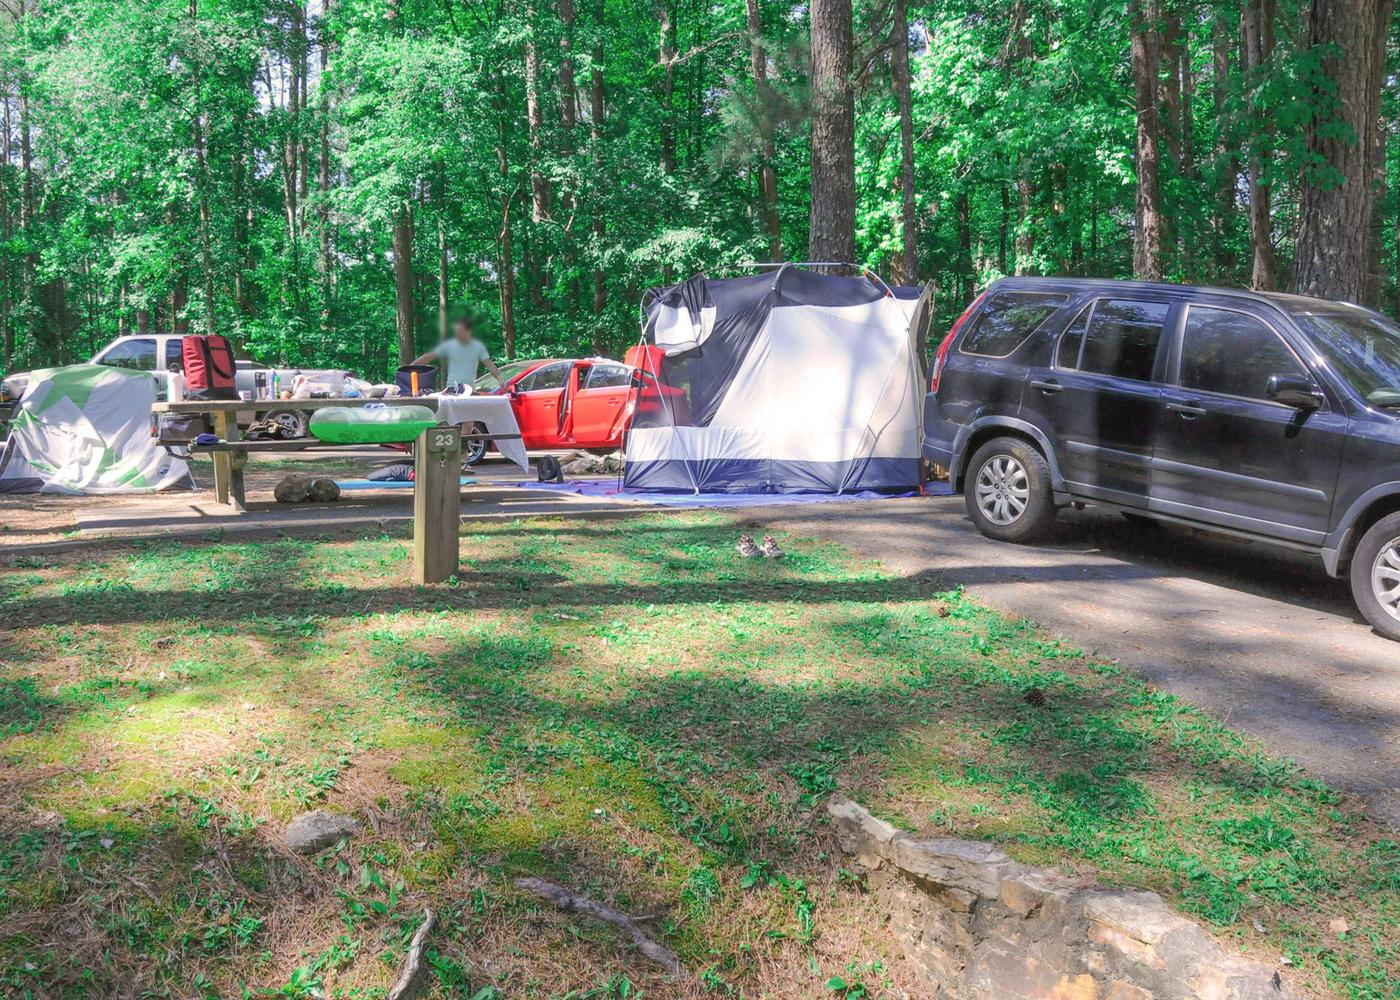 Pull-thru exit, driveway slope, awning-side clearance.McKaskey Creek Campground, campsite 23.